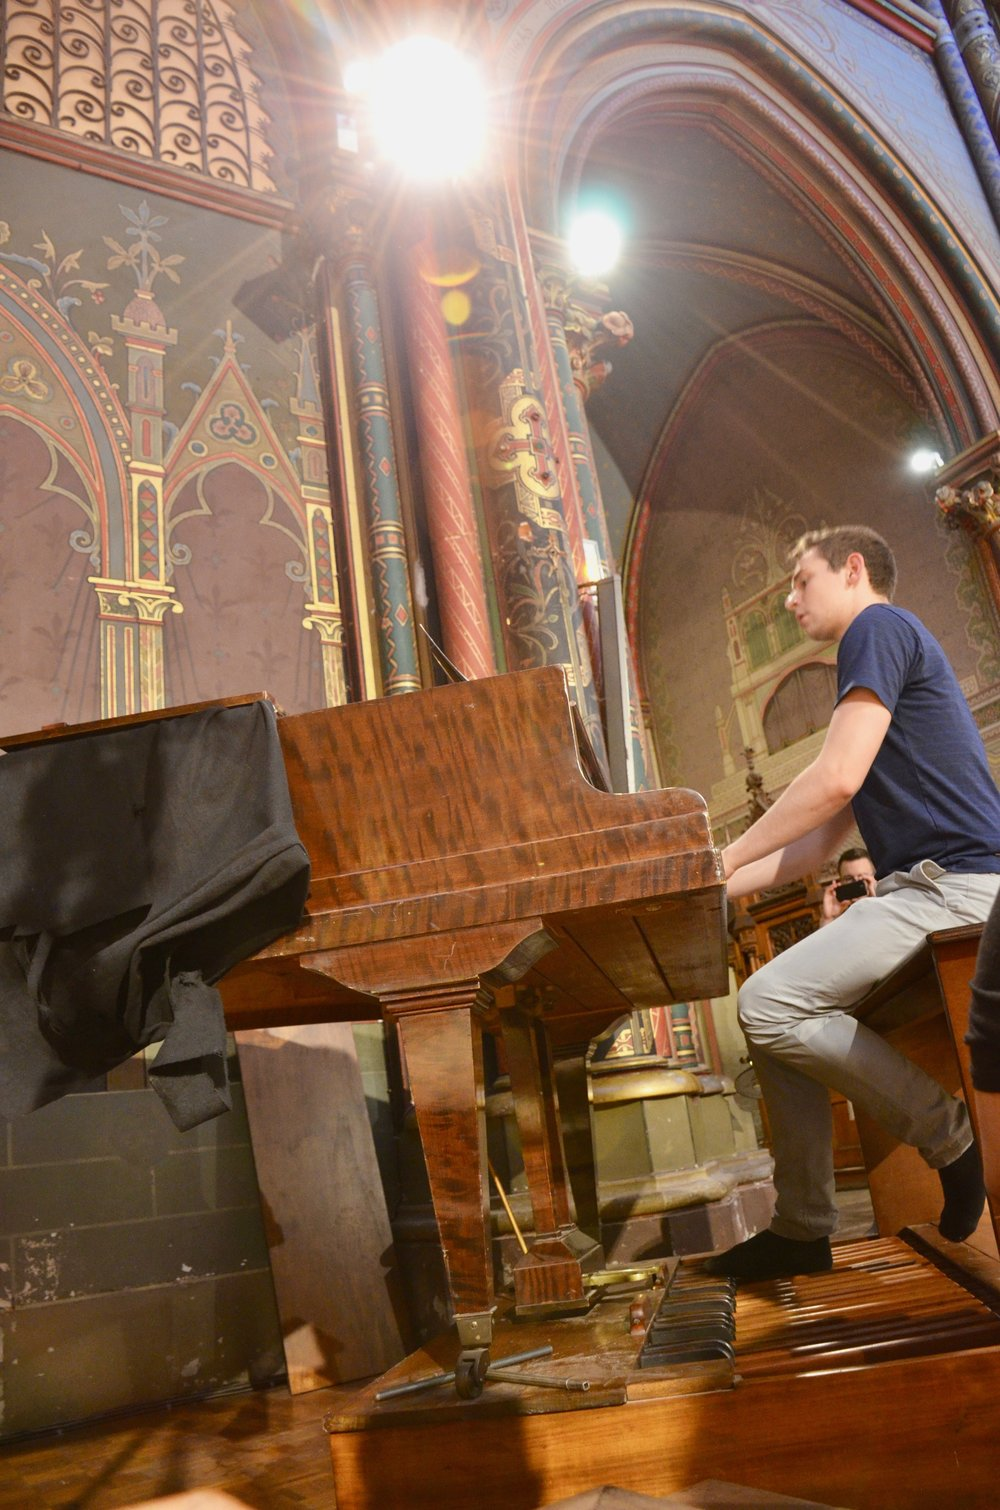 David von Behren performing a pedal-piano work of Schumann in the Gésu Church, Toulouse.